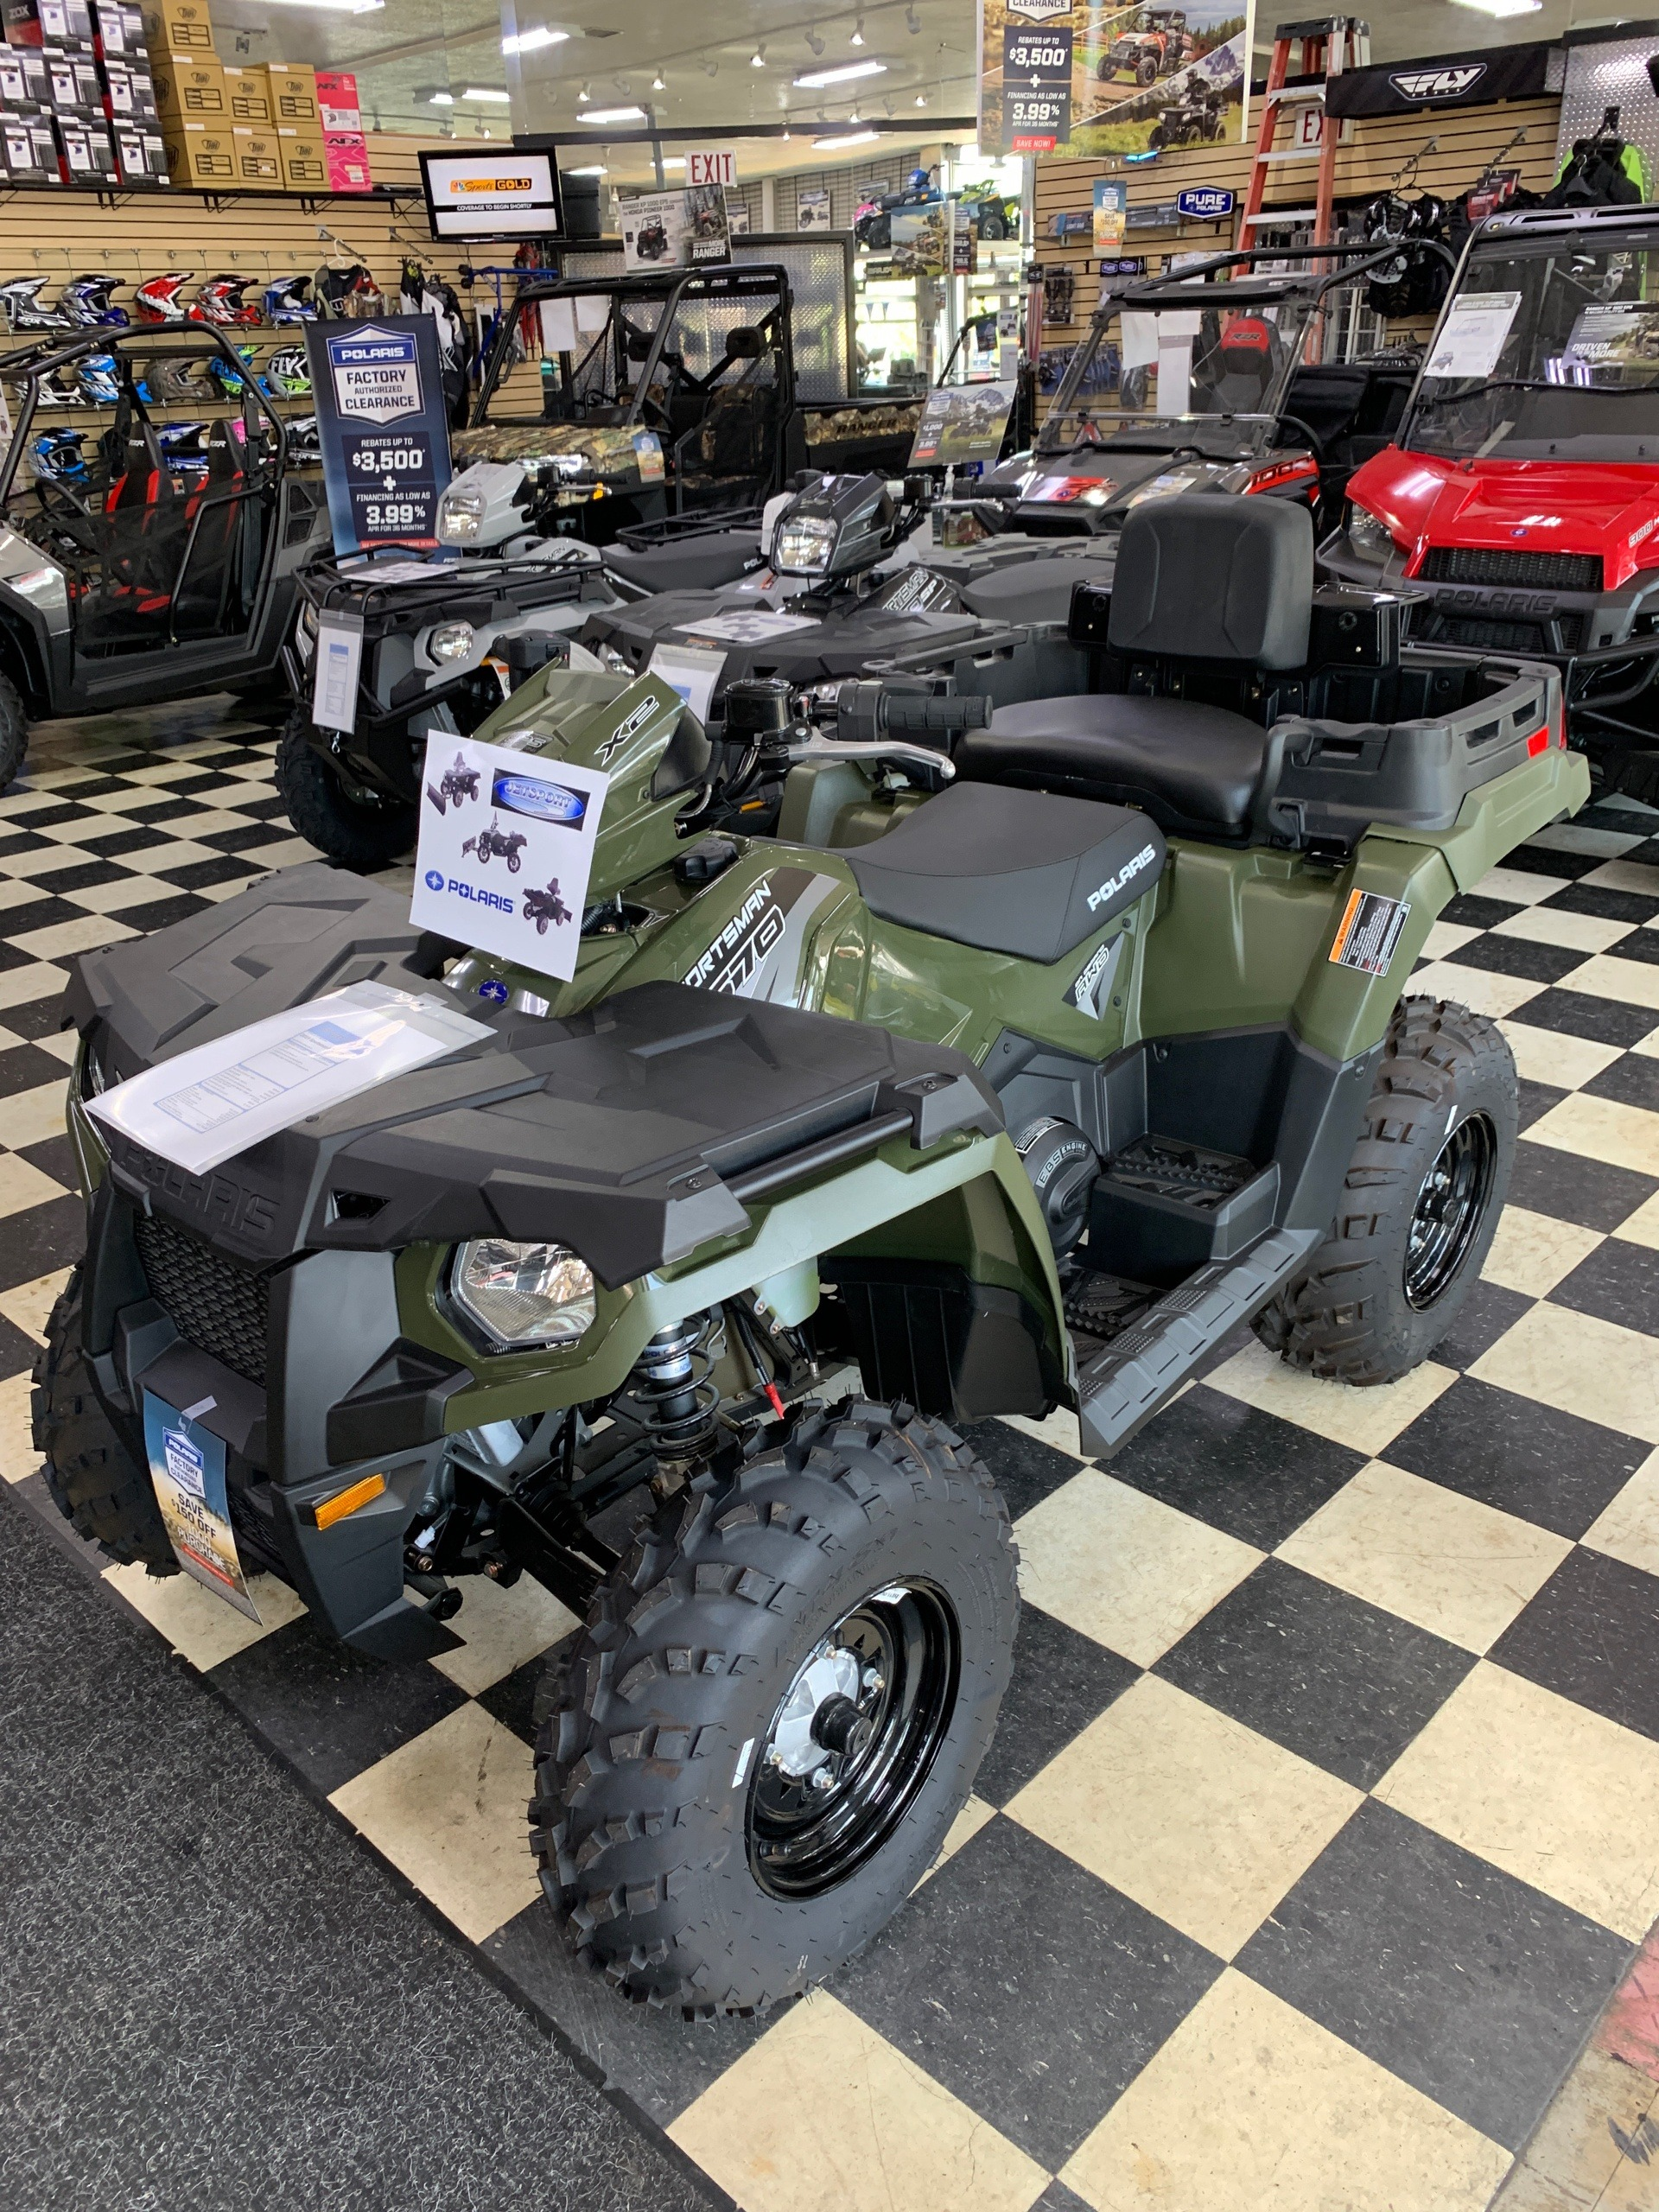 2019 Polaris Sportsman X2 570 in Huntington Station, New York - Photo 3